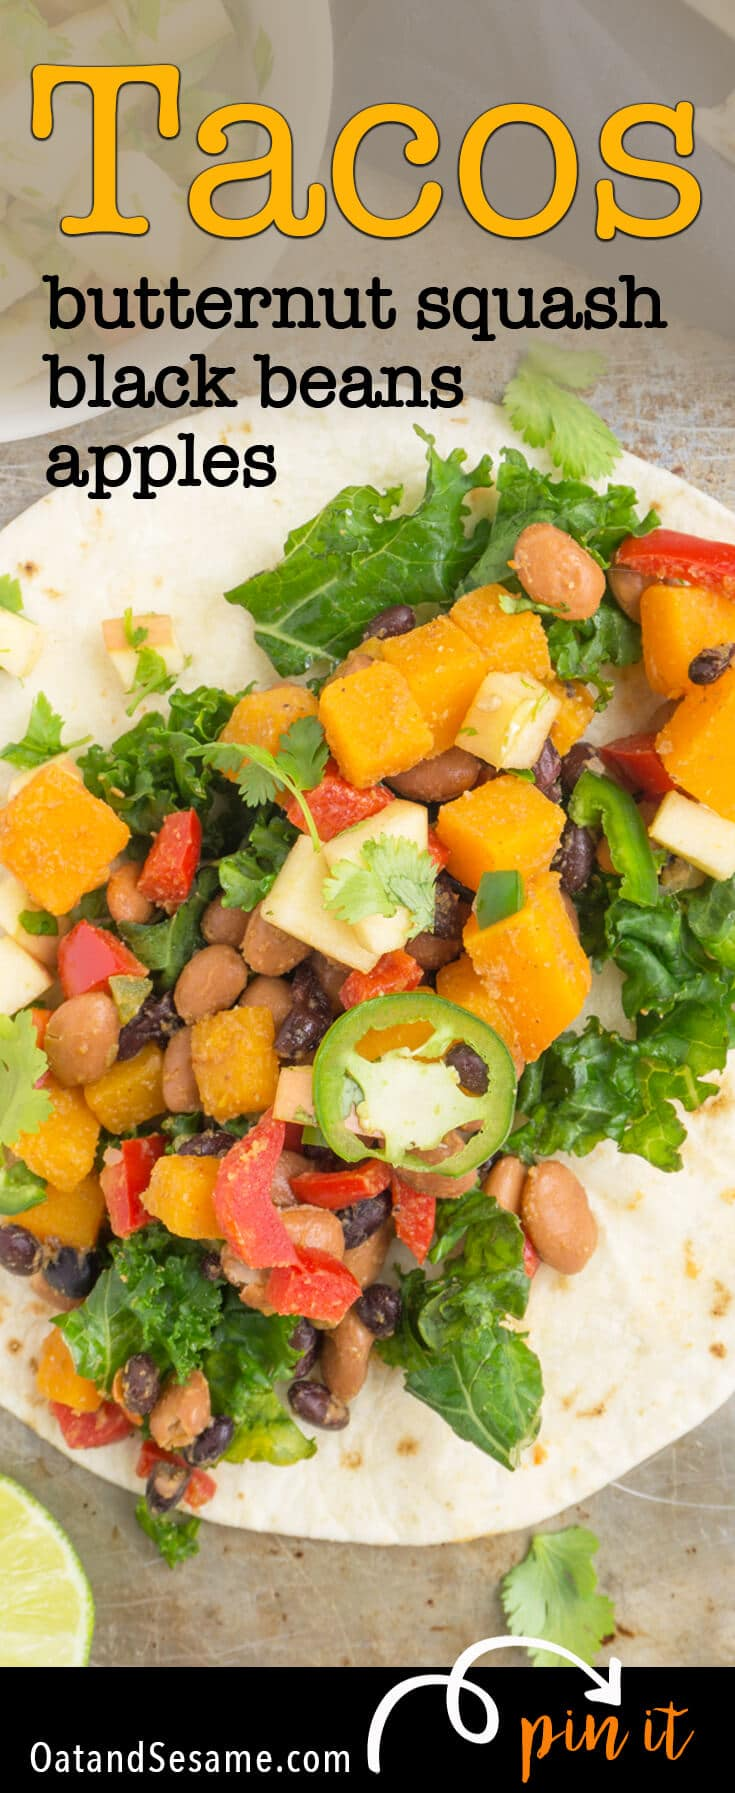 These Vegetarian Tacos with Black Beans are loaded with seasoned vegetables, topped with apples and finished with a smoky maple dressing for a seasonal twist. #TacoTuesday should always be this healthy and delicious! | TACOS | VEGETARIAN | VEGAN | PLANT BASED | Recipe at OatandSesame.com